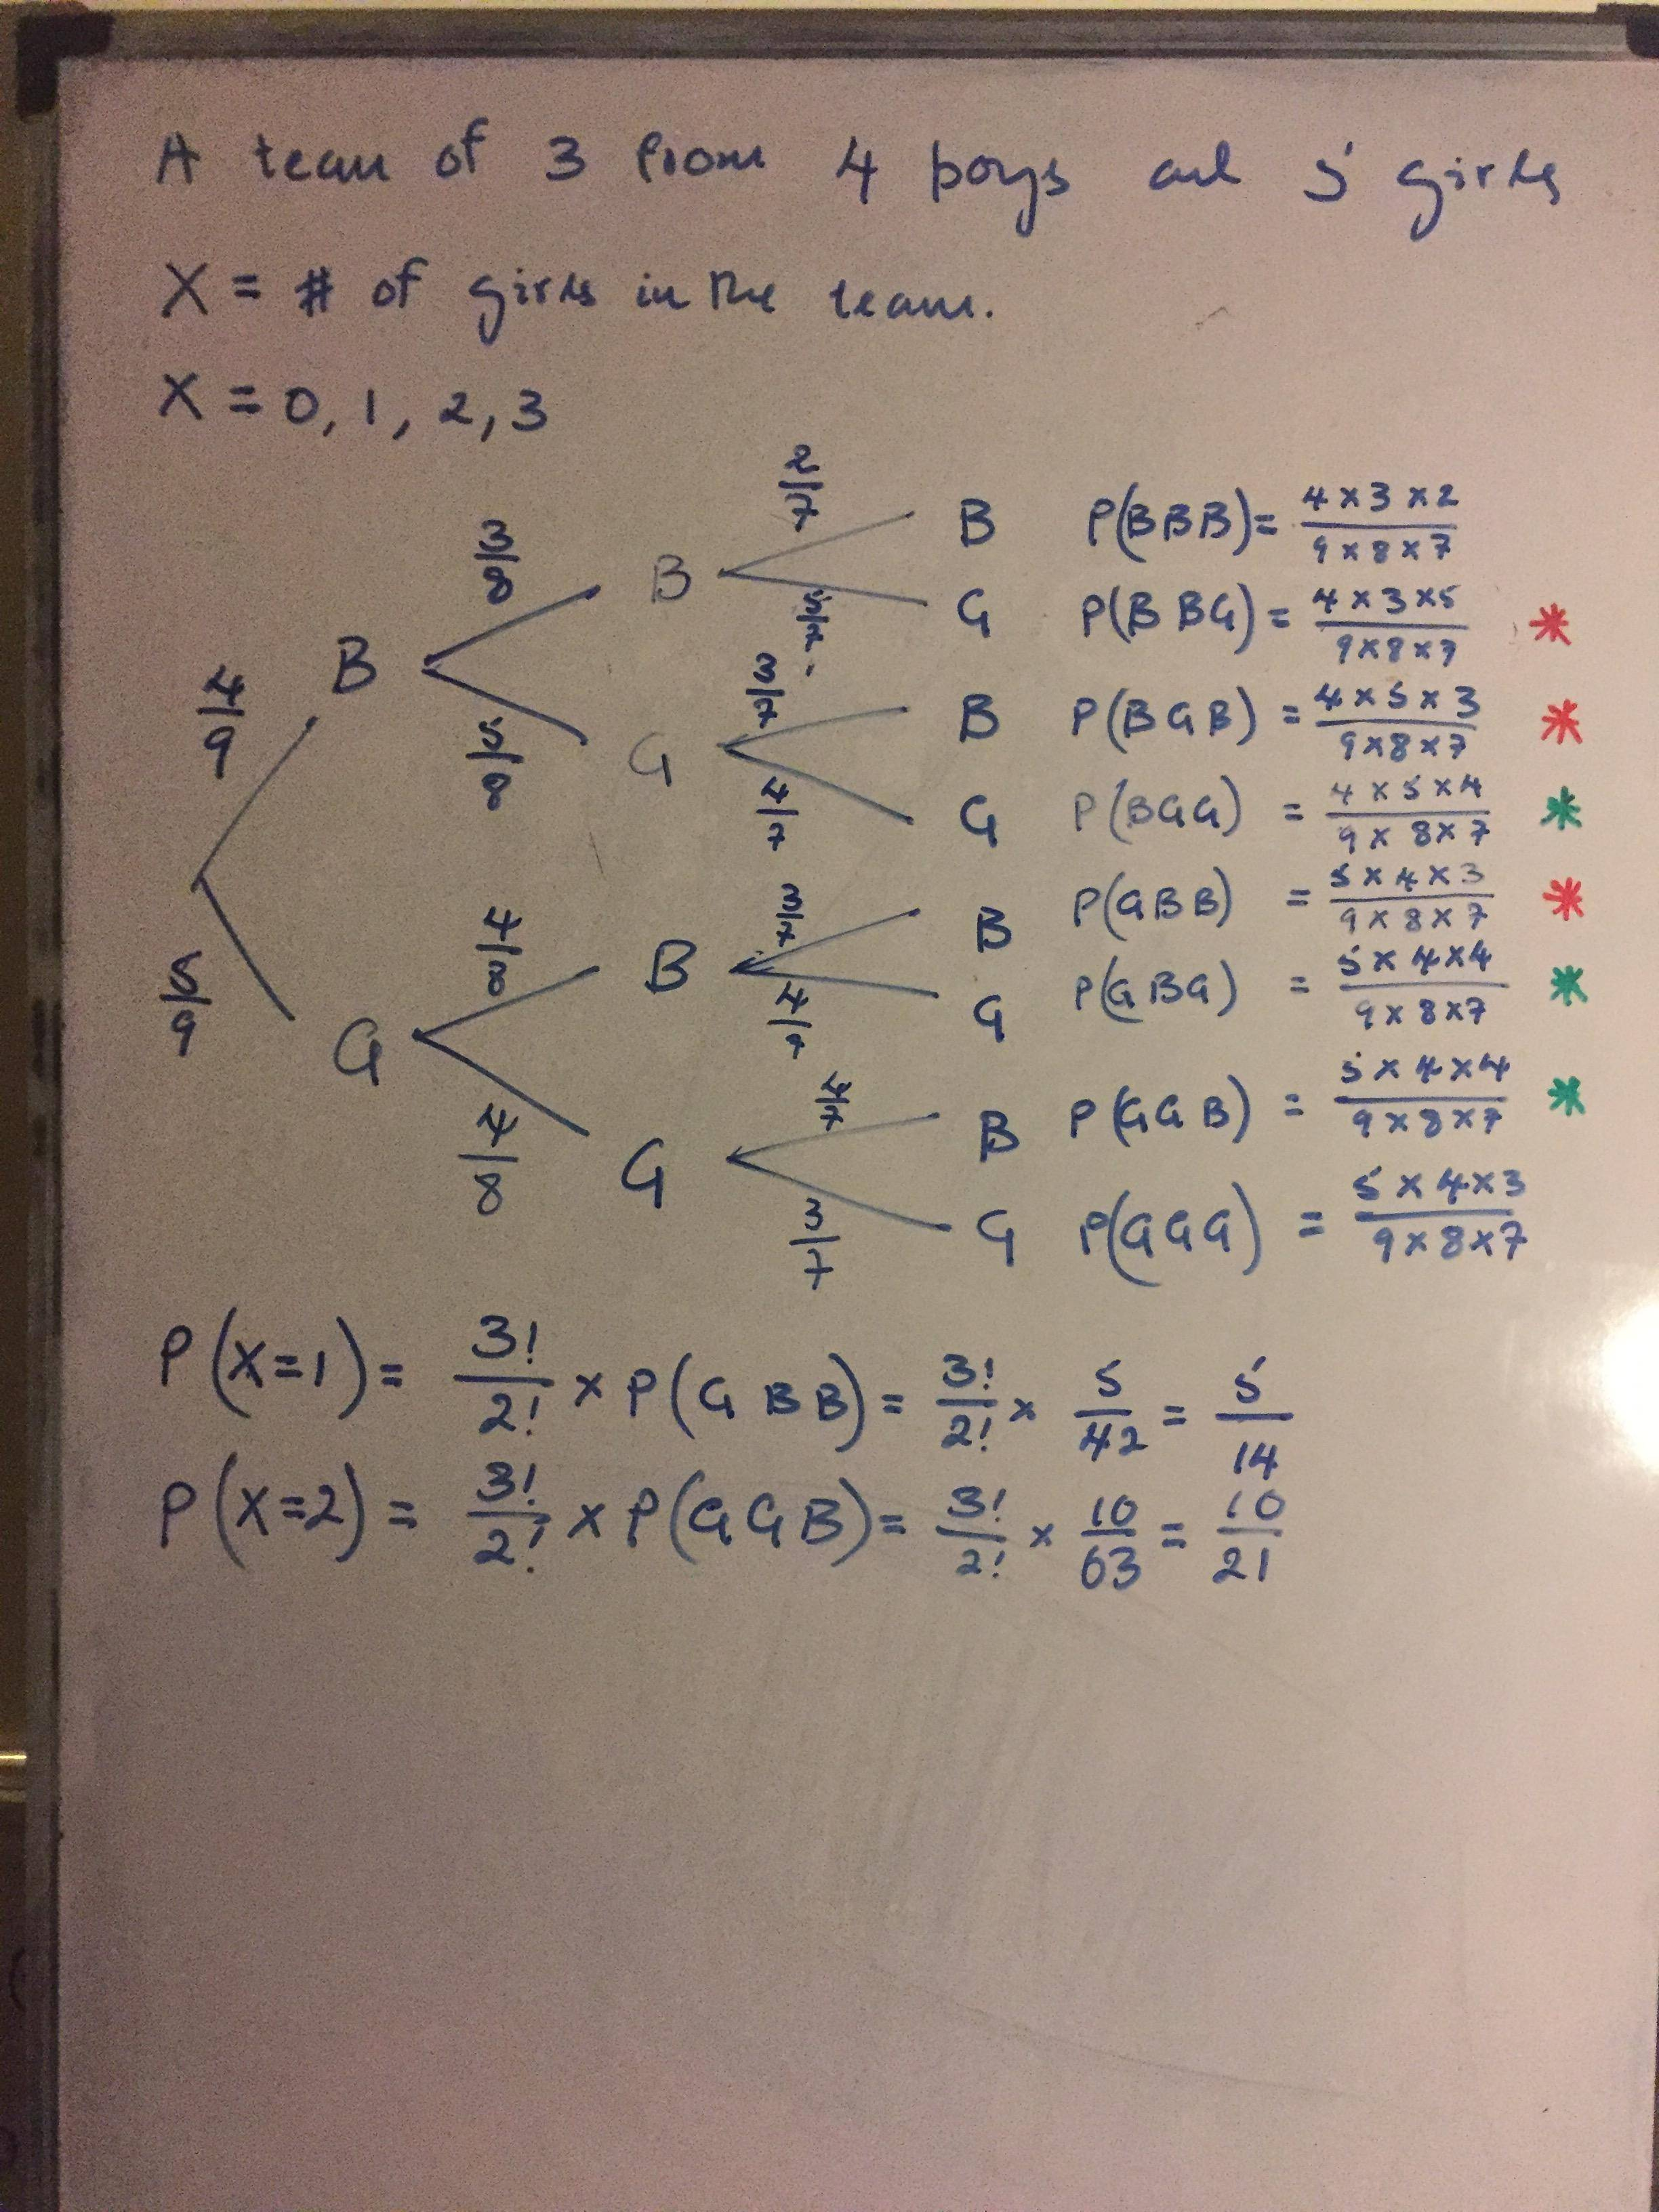 Patterns In Probability Trees